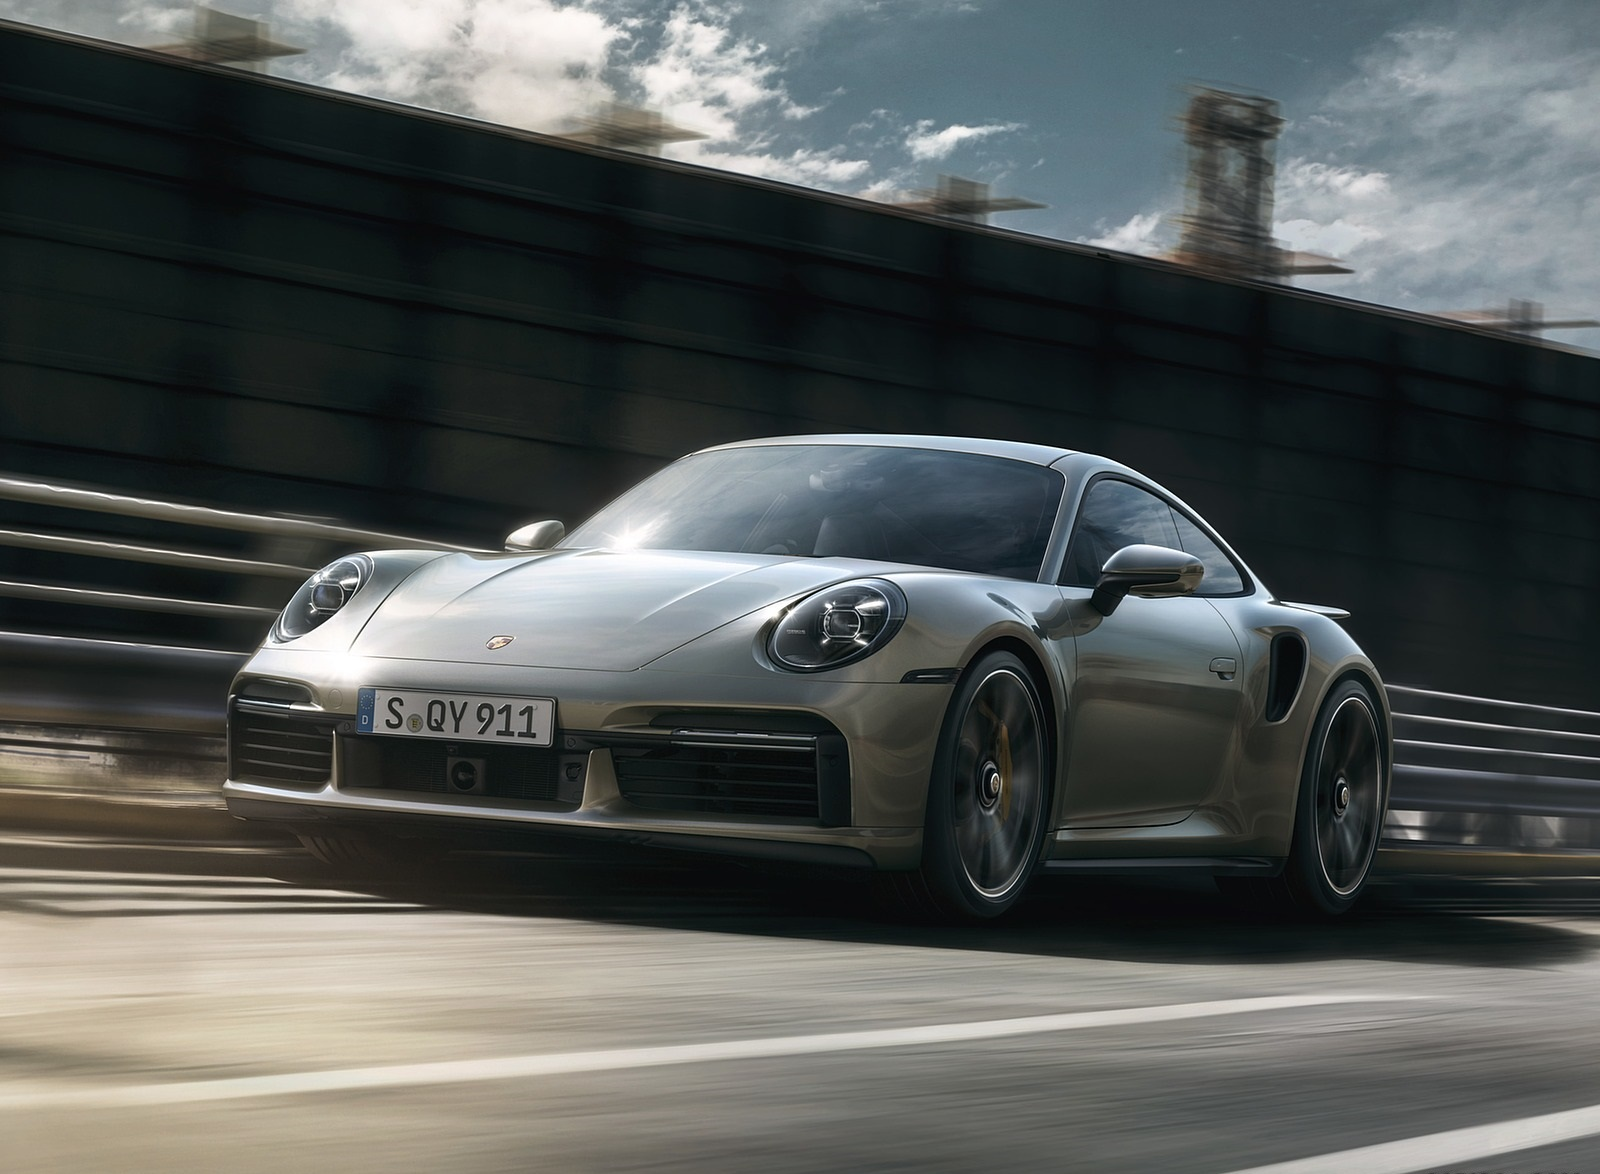 2021 Porsche 911 Turbo S Wallpapers 46 Hd Images Newcarcars